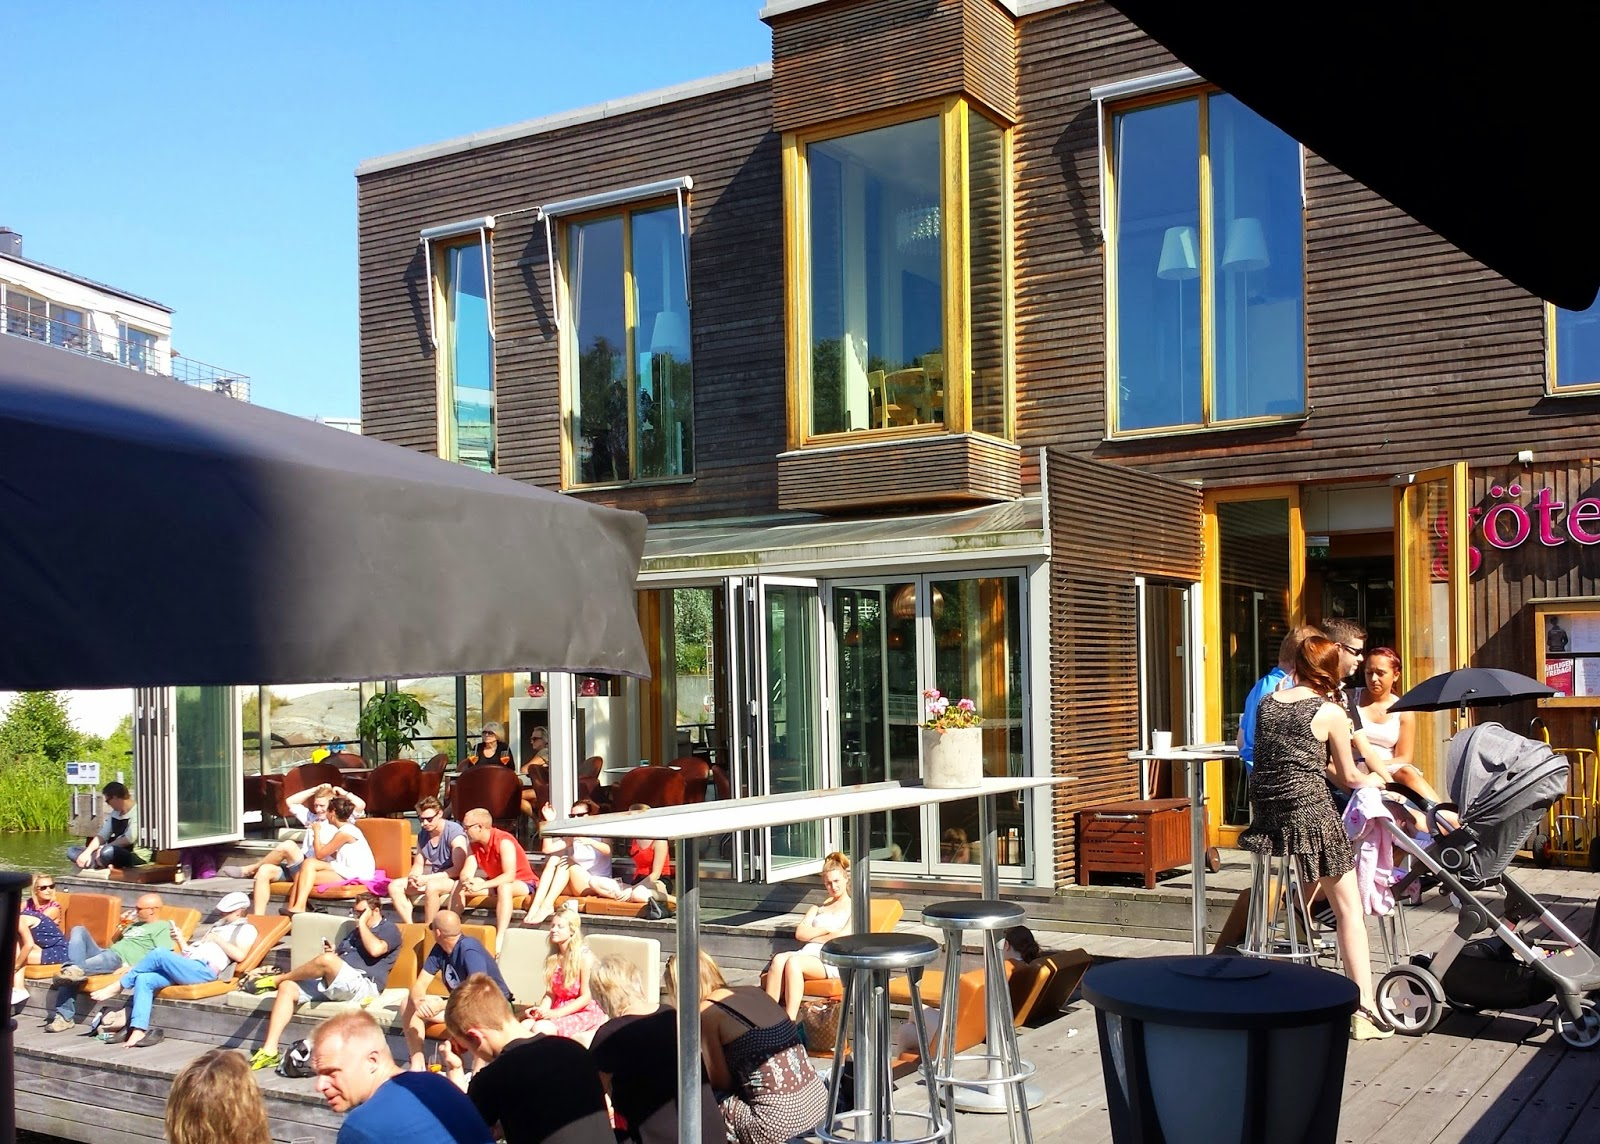 Restaurang Göteborg in Hammarby Sjöstad  | Our first July 4th abroad on afeathery*nest  |  http://afeatherynest.blogspot.com